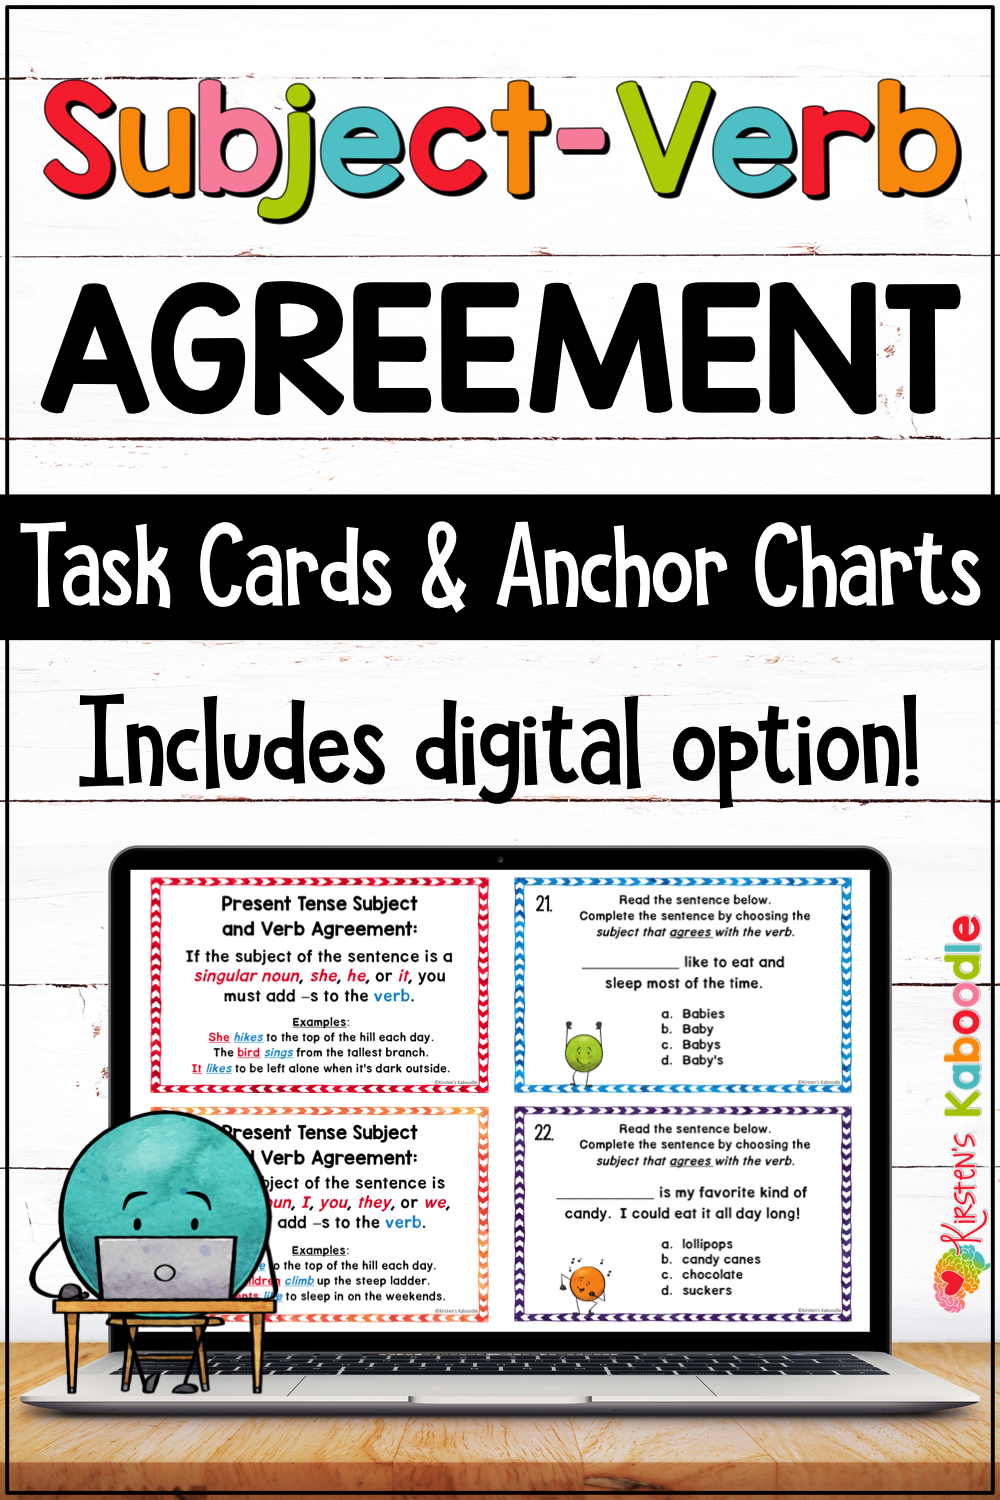 Subject Verb Agreement Anchor Charts With Rules And Task Cards Activities With Digital Option Subject And Verb Subject Verb Agreement Anchor Charts [ 1500 x 1000 Pixel ]